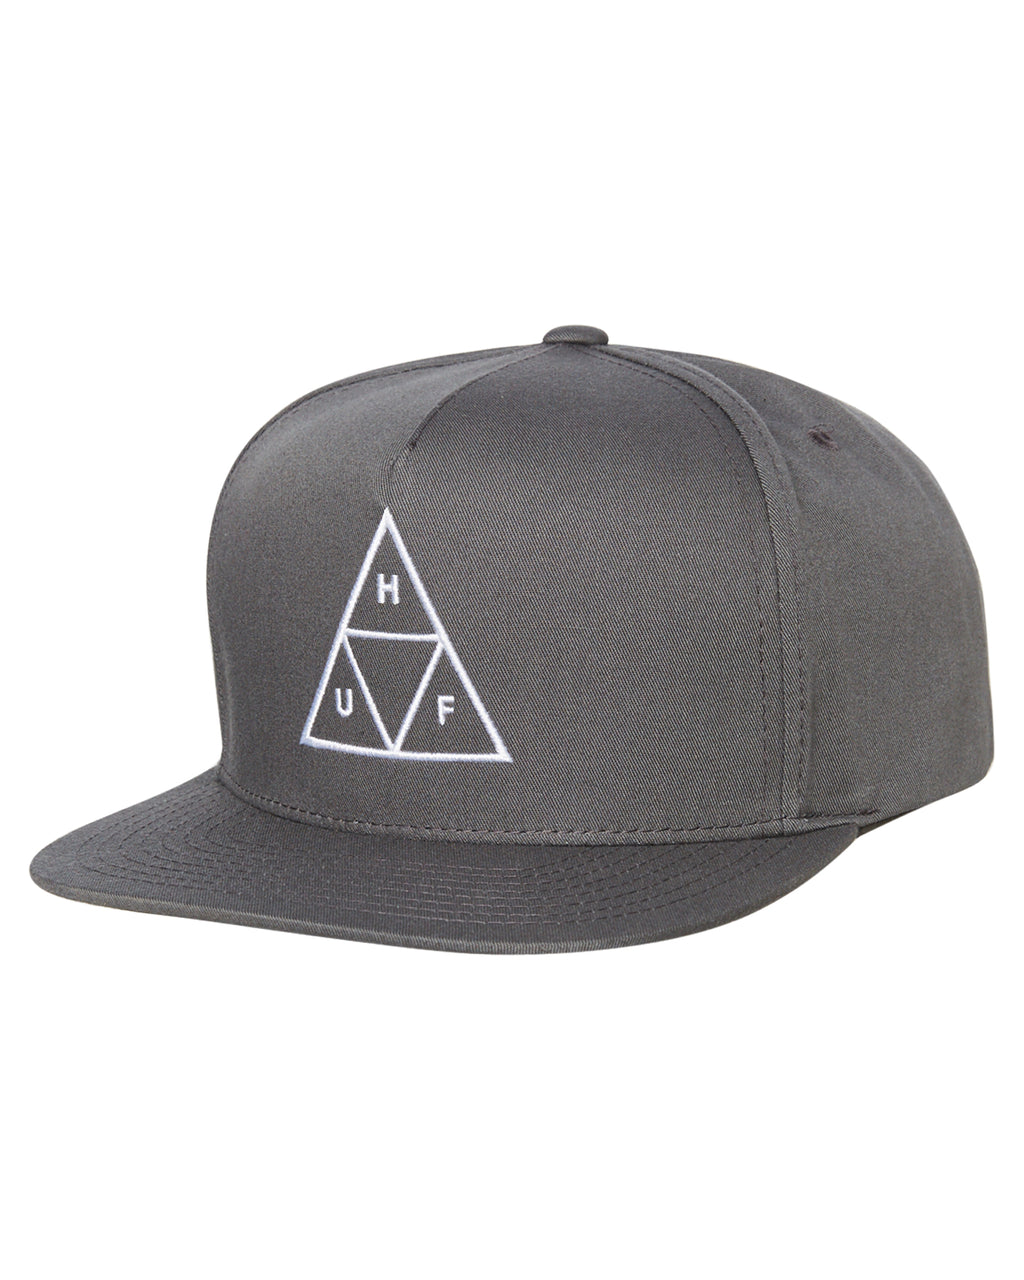 HUF Essentials TT Snapback Hat